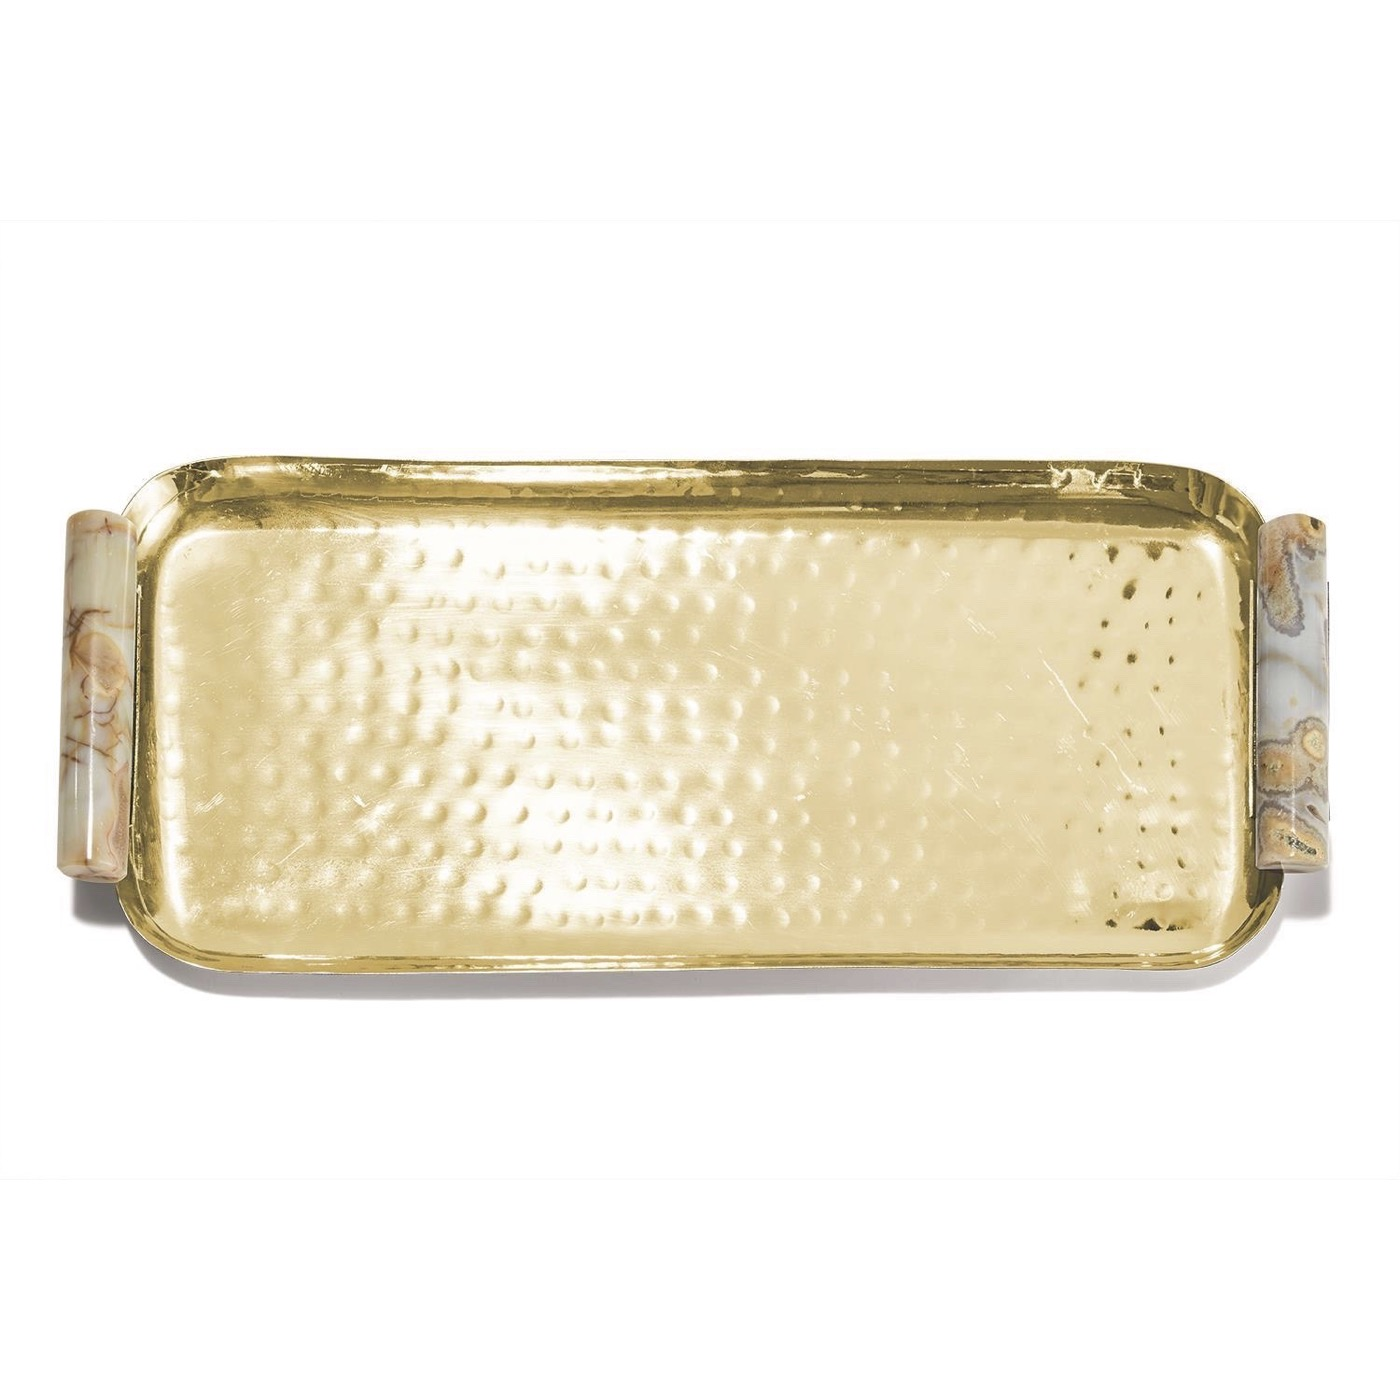 Rozi Gold & Agate Tray